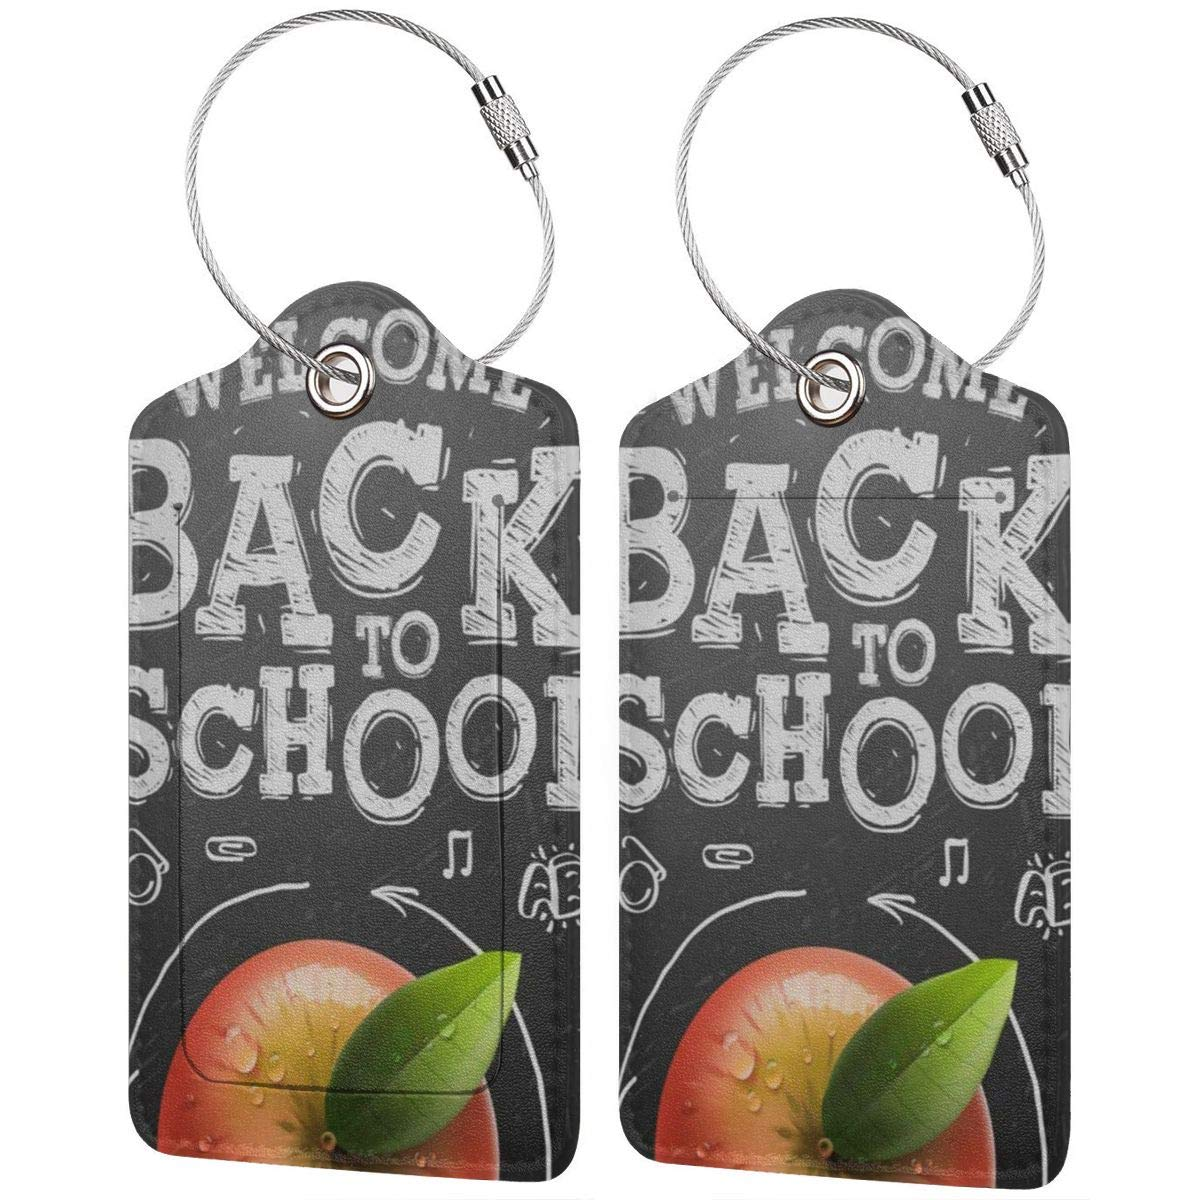 Welcome Back To School Leather Luggage Tags Personalized Suitcase Tag With Adjustable Strap